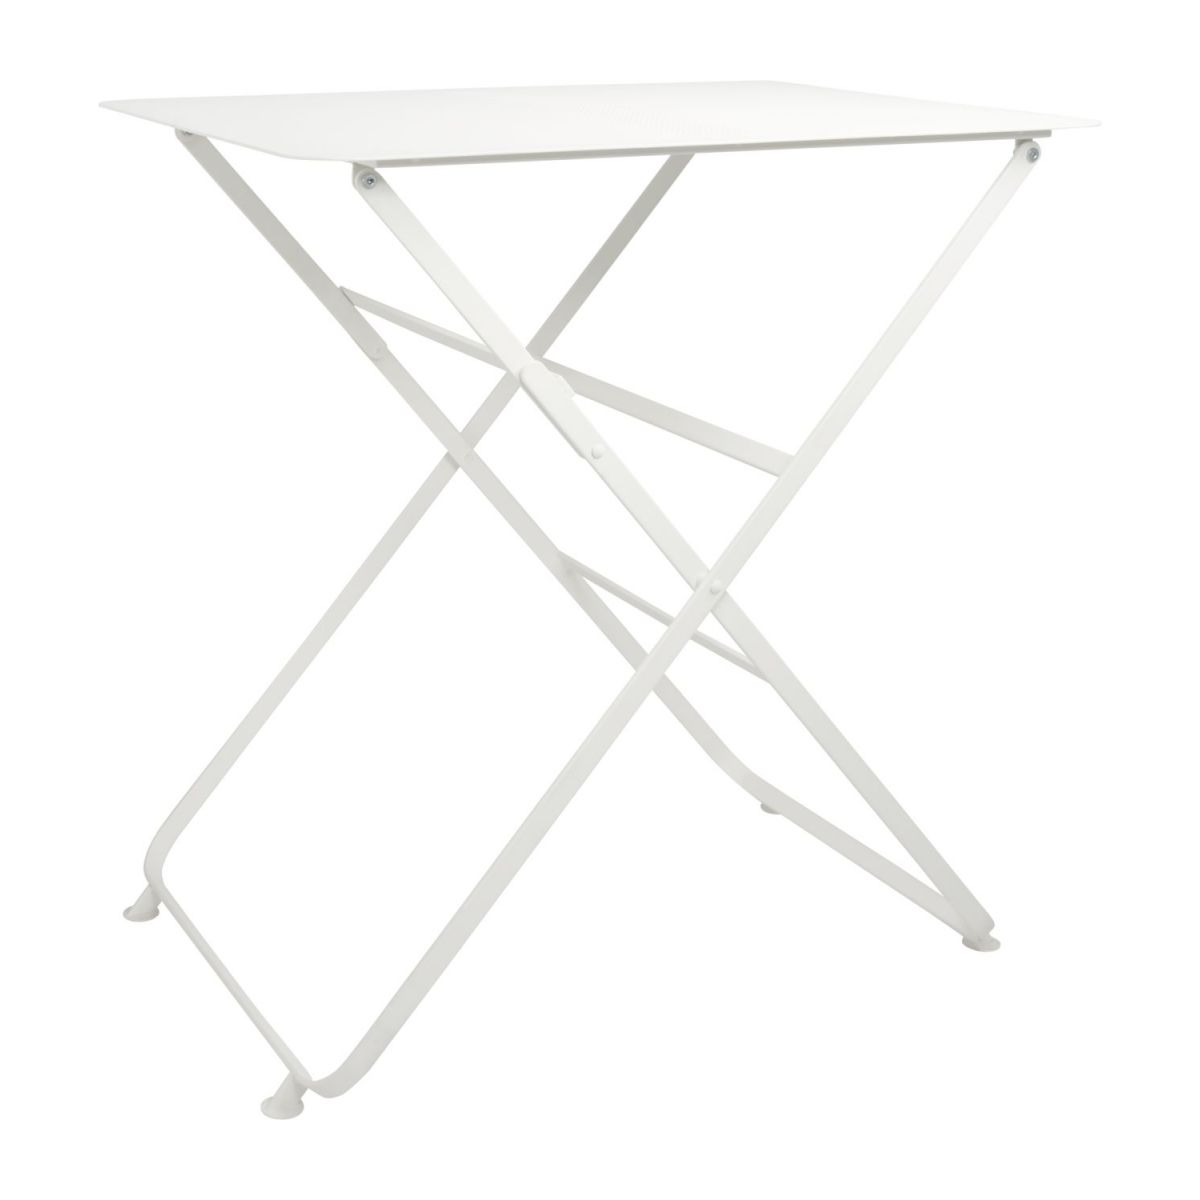 Table Metal Blanc Helios Table Pliante En Métal Blanche